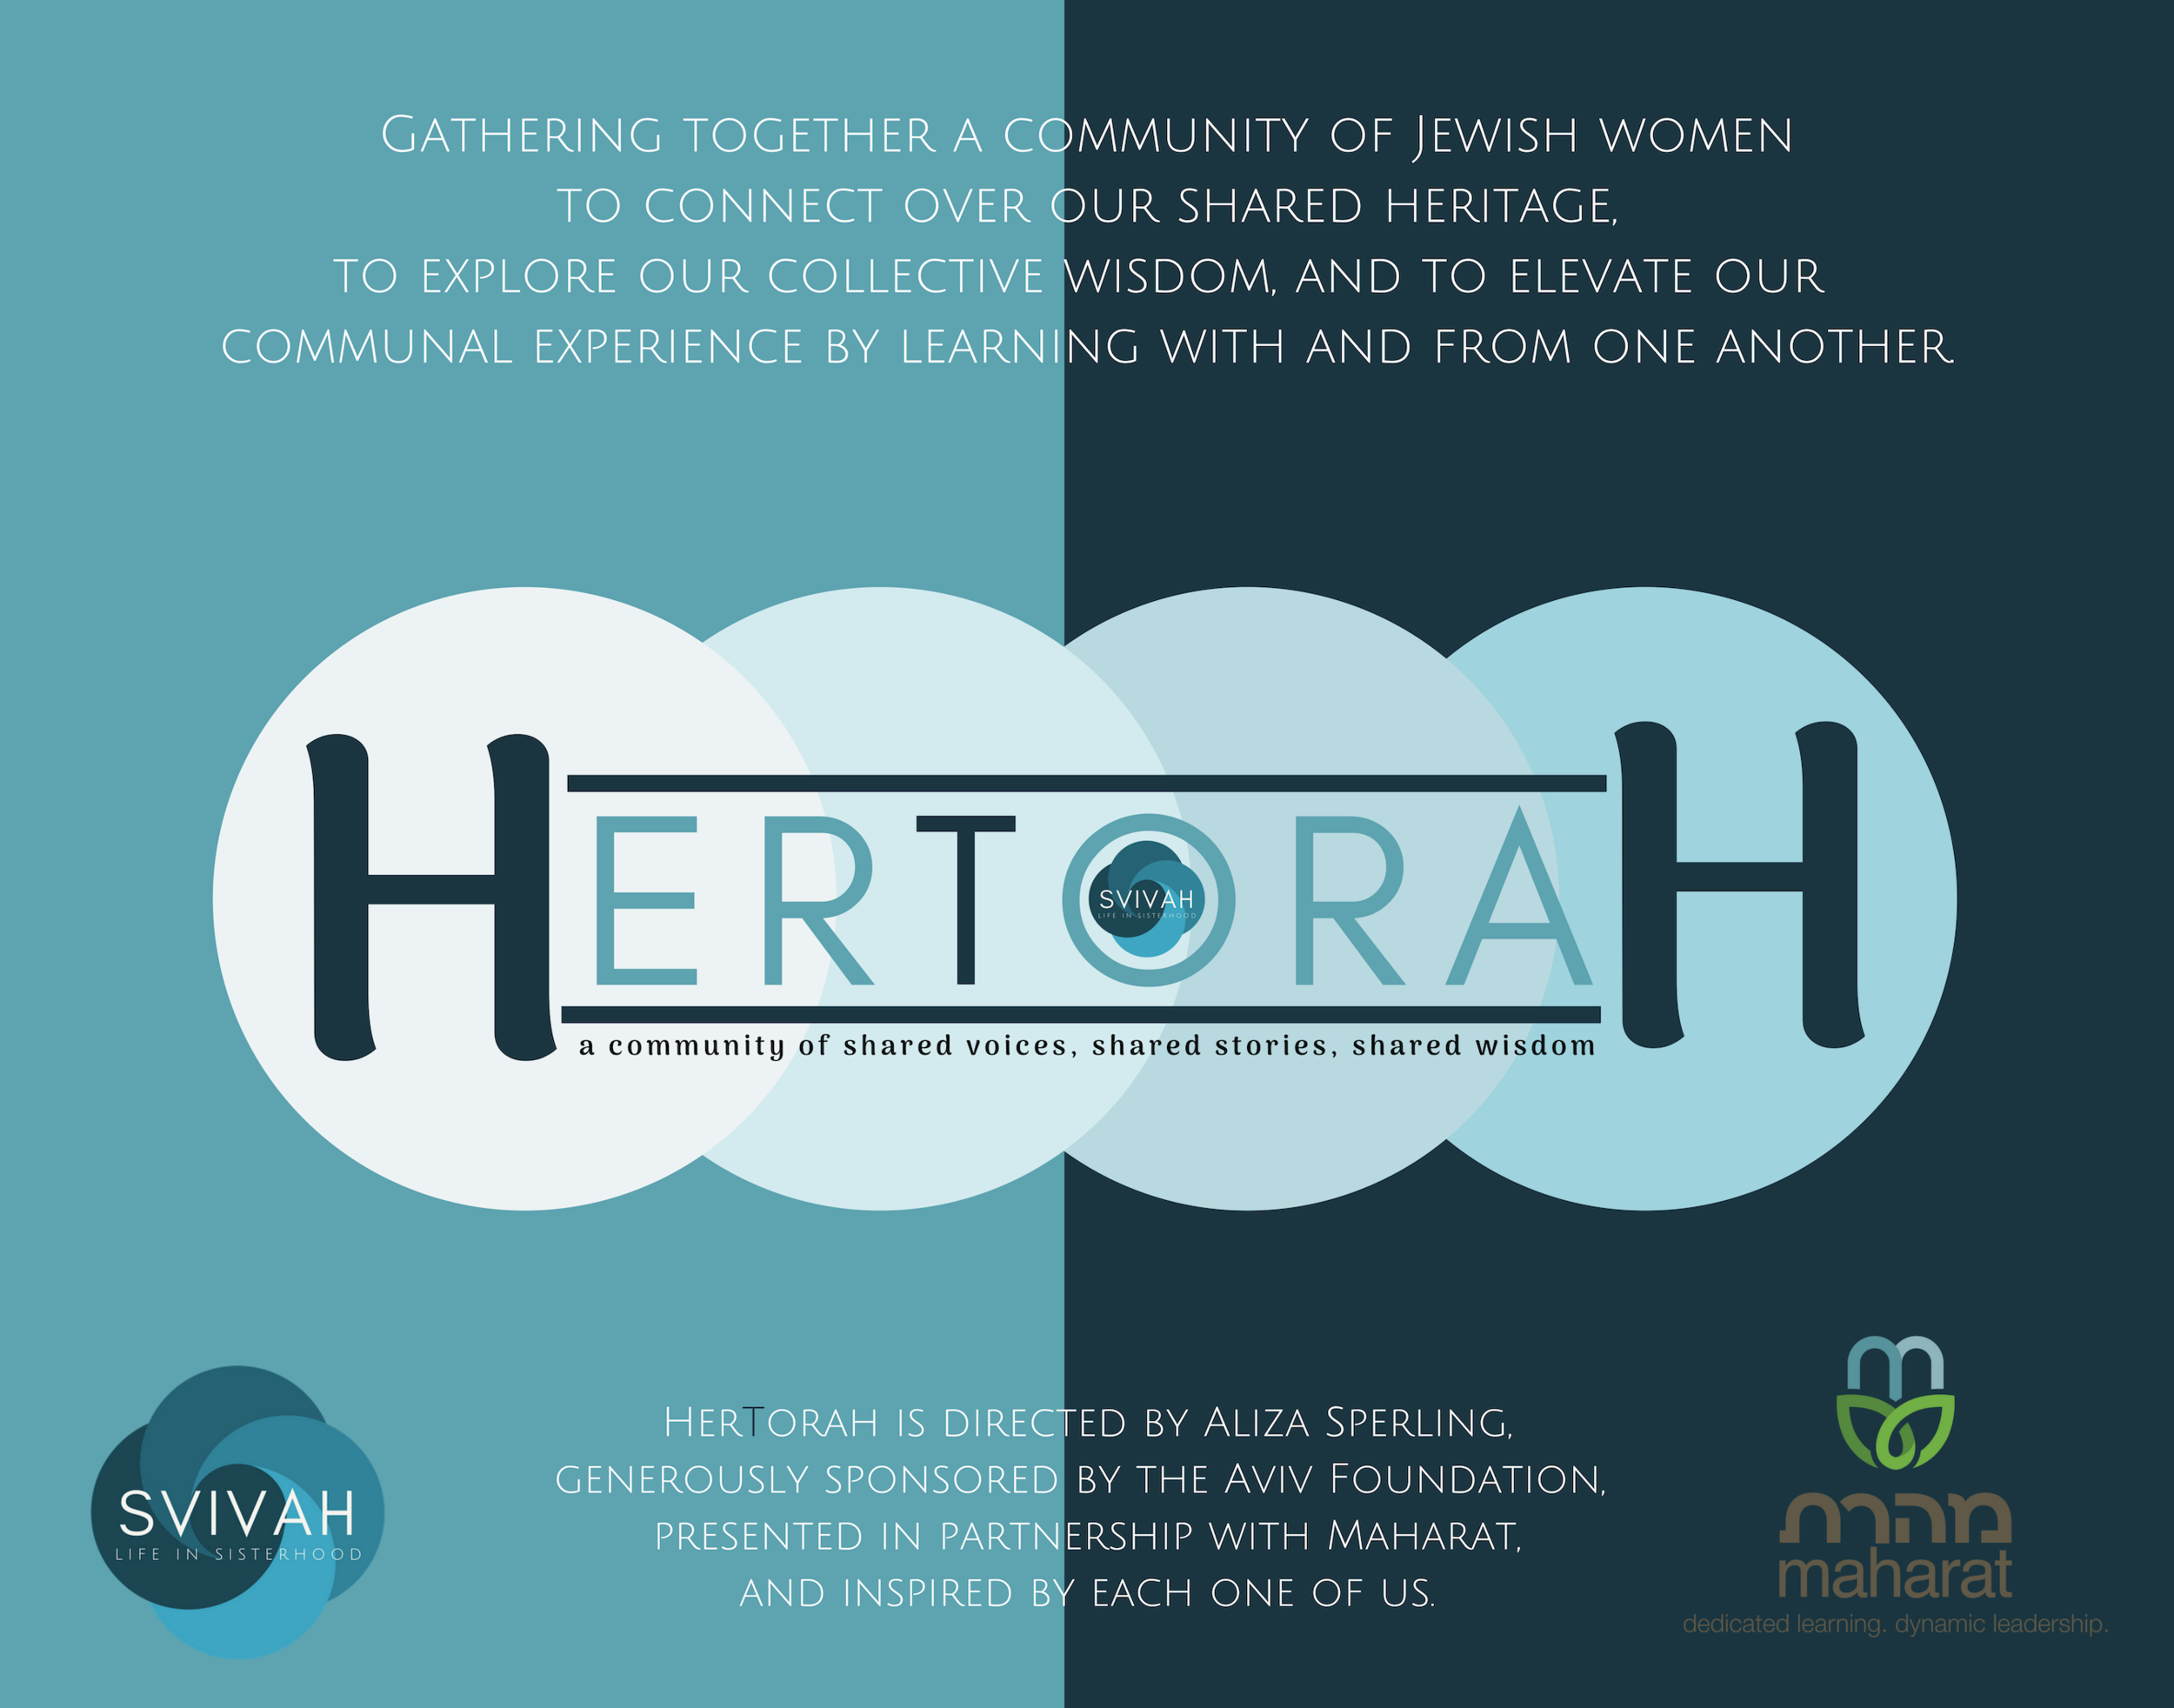 HerTorah gathers together a diverse community of Jewish women to connect over our shared heritage, explore our collective wisdom, and elevate our communal experience in learning with andfrom one another. -